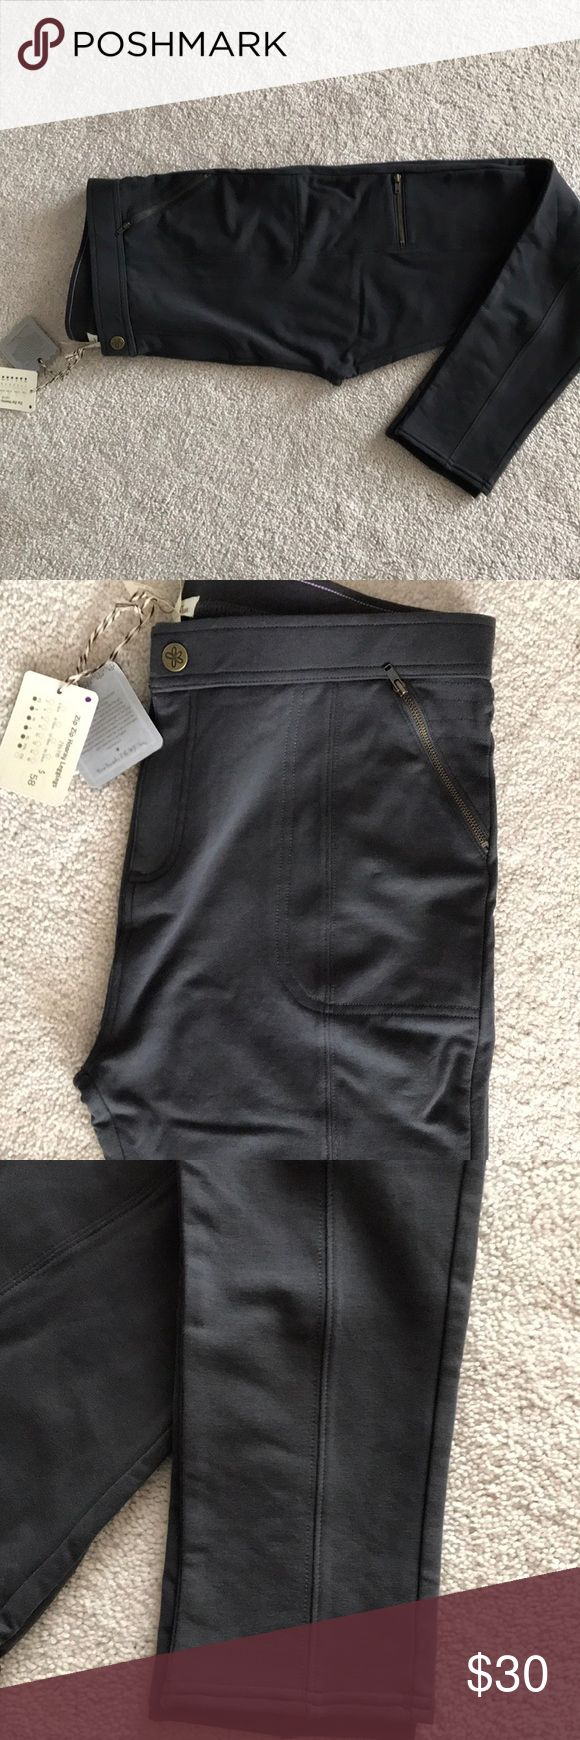 Zip hooray leggings Matilda Jane Super soft NWT charcoal grey zip zip hooray leggings by MJ. Size XL never tried on and smoke and pet free home Matilda Jane Pants Leggings